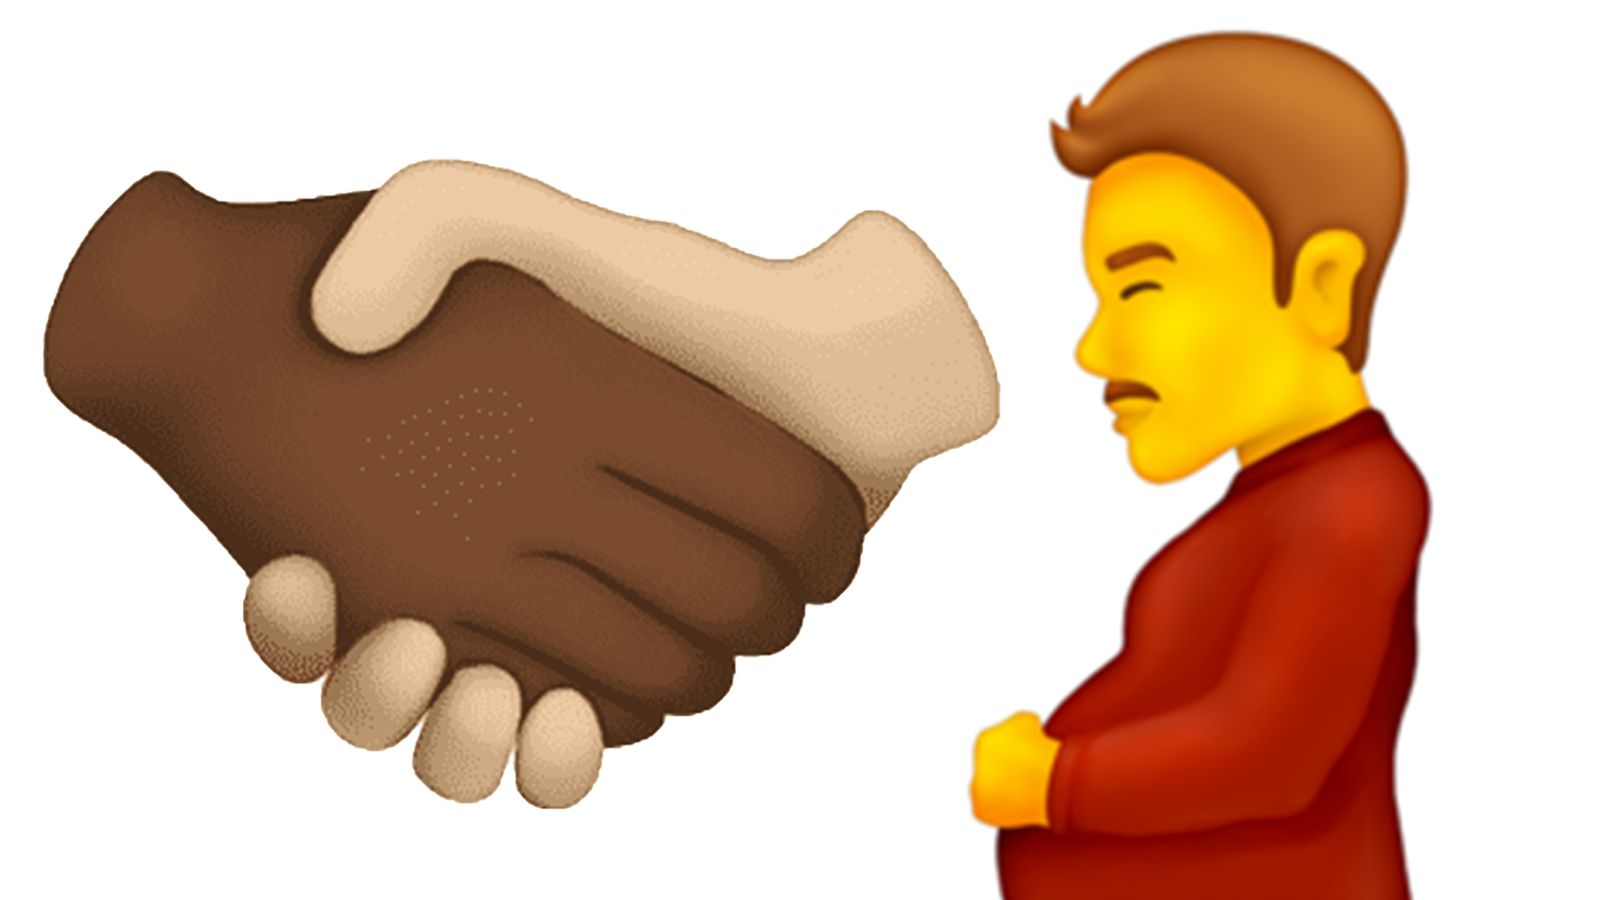 Pregnant man and multiracial handshake among new emojis being introduced this year